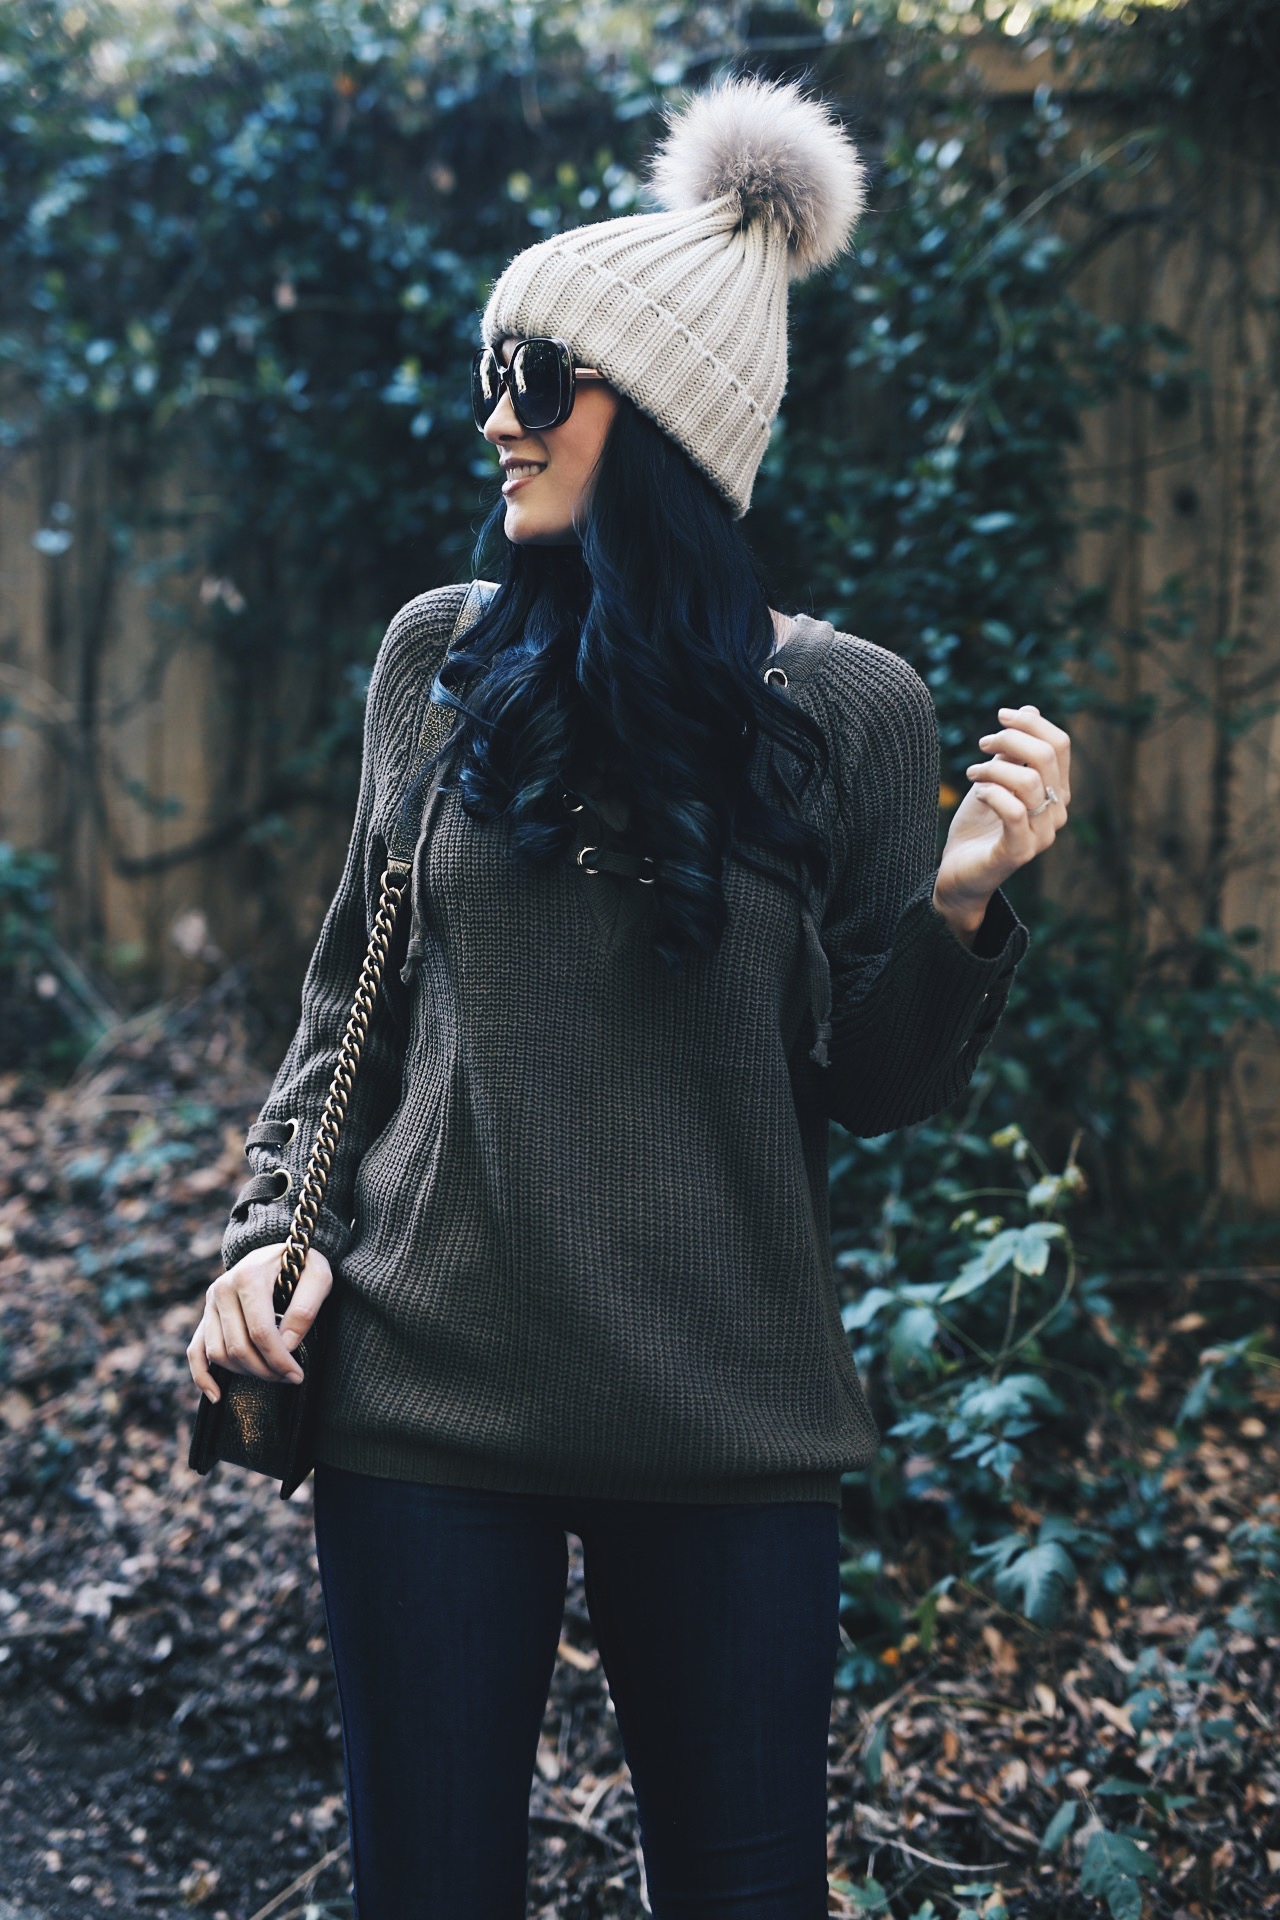 DTKAustin is sharing her fave olive green lace up sweater from Honeybum. Use code DTK20 for 20% your entire order. Bang - Chanel, Booties - Lucky Brand | olive green lace up fall sweater | how to style a lace up sweater | fall sweater fashion | fall fashion tips | fall outfit ideas | fall style tips | what to wear for fall | cool weather fashion | fashion for fall | style tips for fall | outfit ideas for fall || Dressed to Kill #fallstyle #fallsweaters #laceupsweater